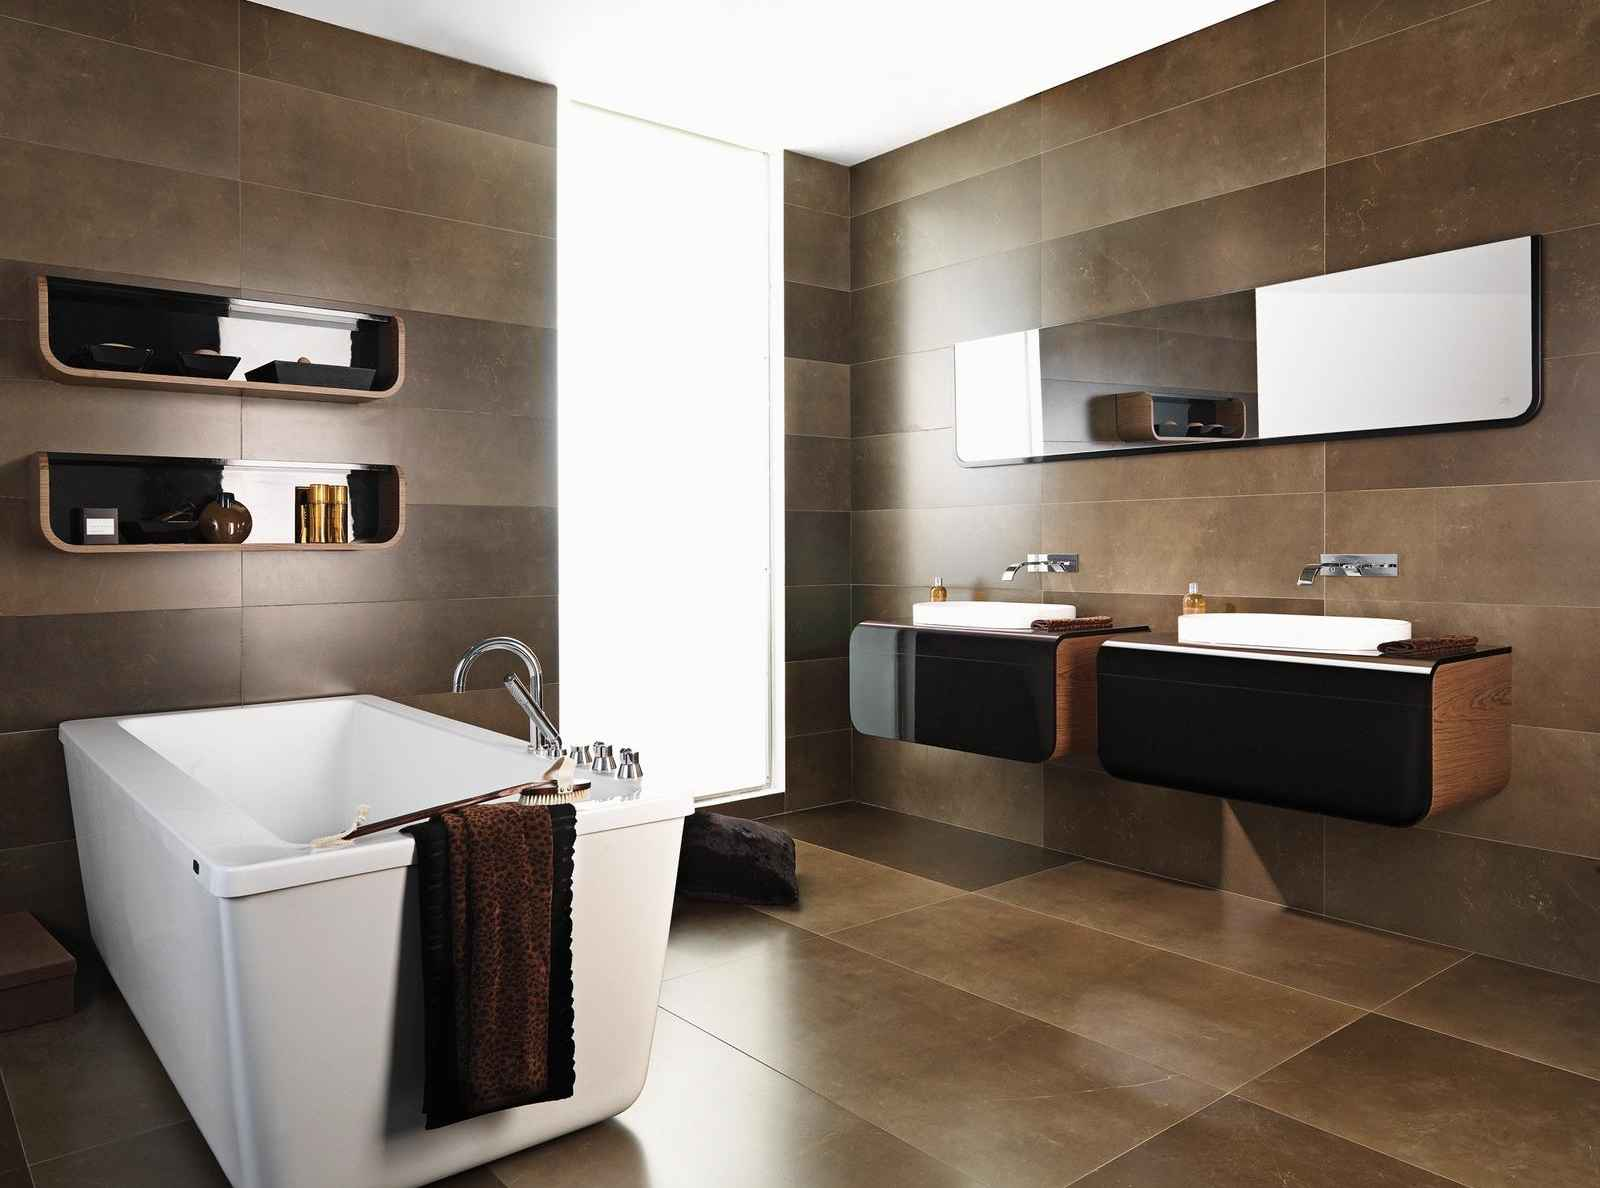 27 wonderful pictures and ideas of italian bathroom wall tiles for Fancy bathroom wall tiles